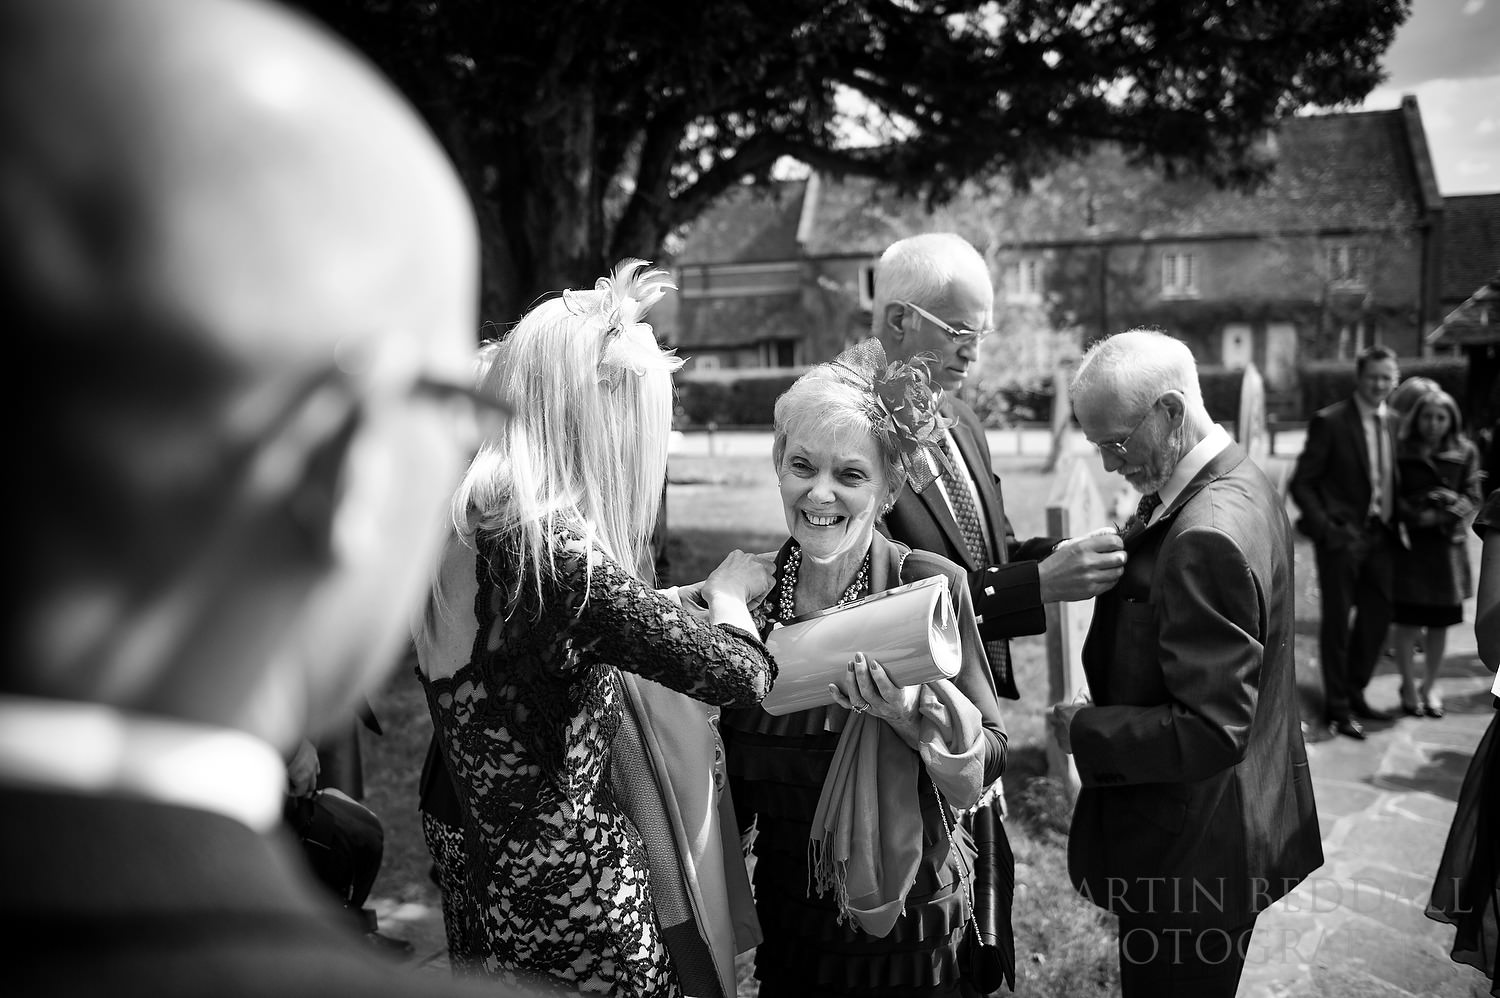 Family arrives at Newdigate church wedding